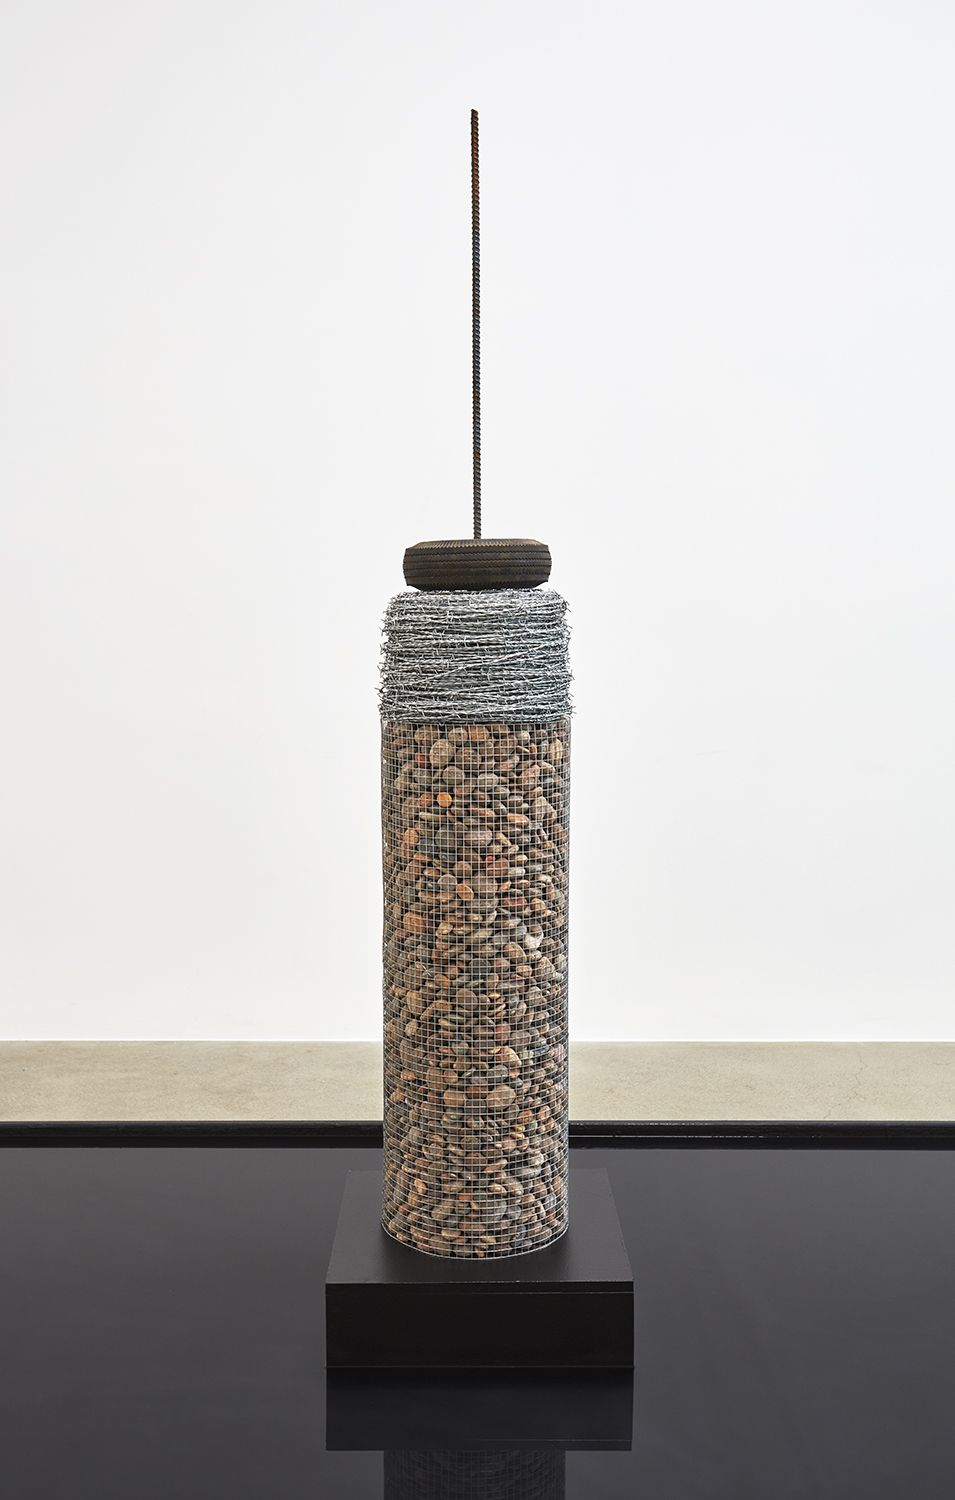 Charles Harlan Barbed Wire, 2016